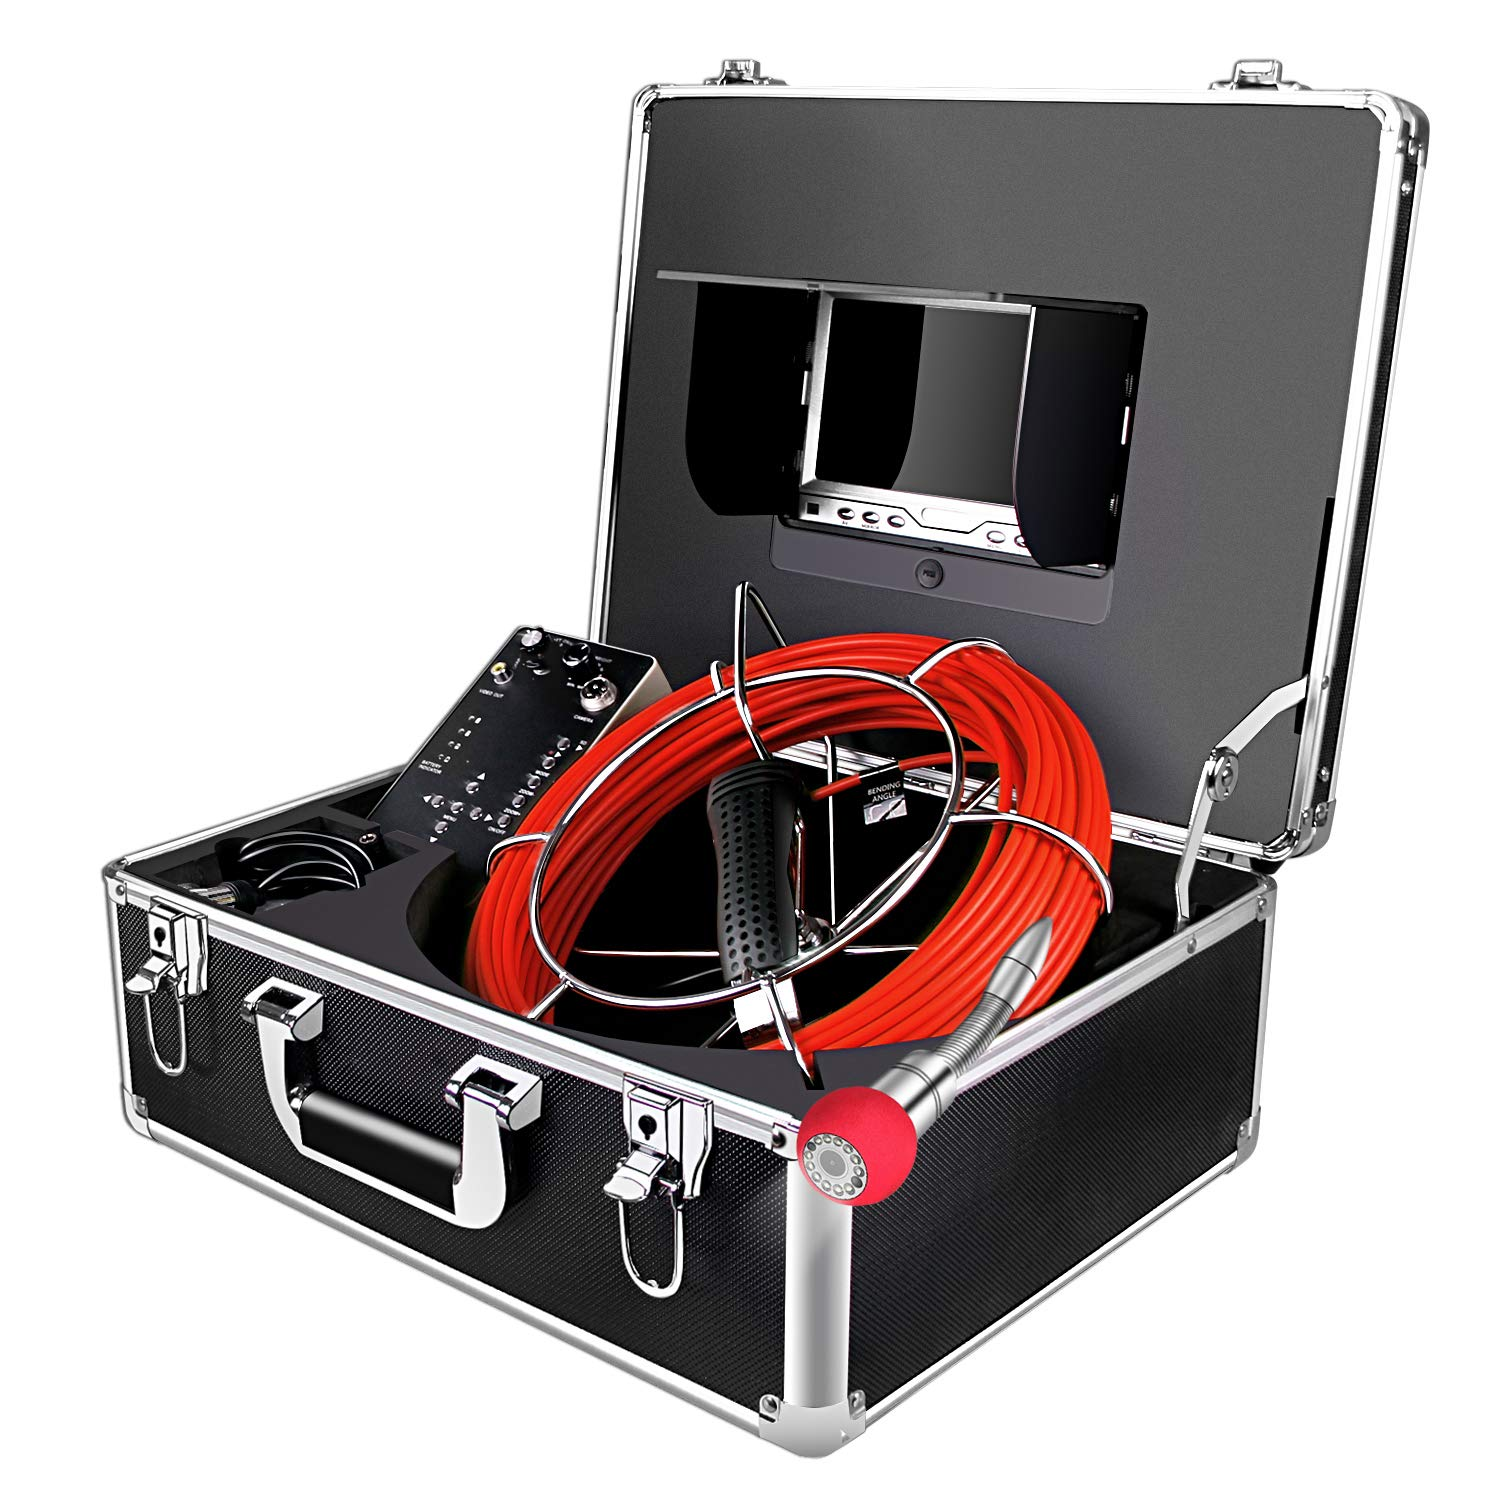 Borescope Camera 100ft Snake Cam with Distance Counter DVR Video Sewer Pipe Inspection Equipment 7 inch LCD Monitor Duct HVAC image